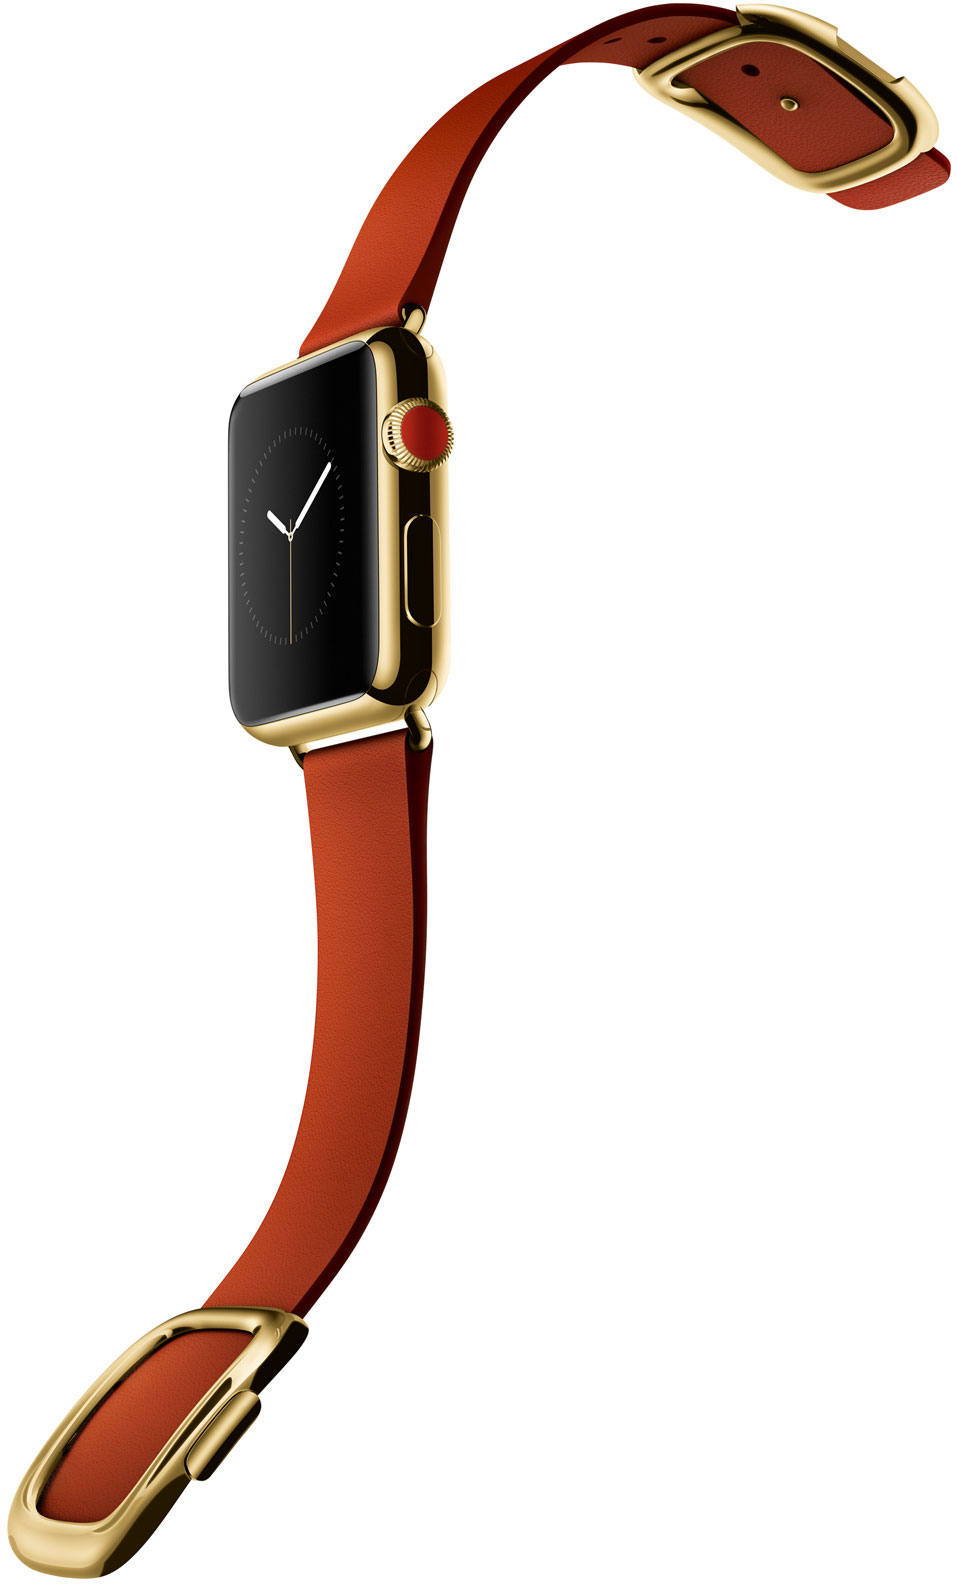 Geltono aukso Apple Watch, RED Edition